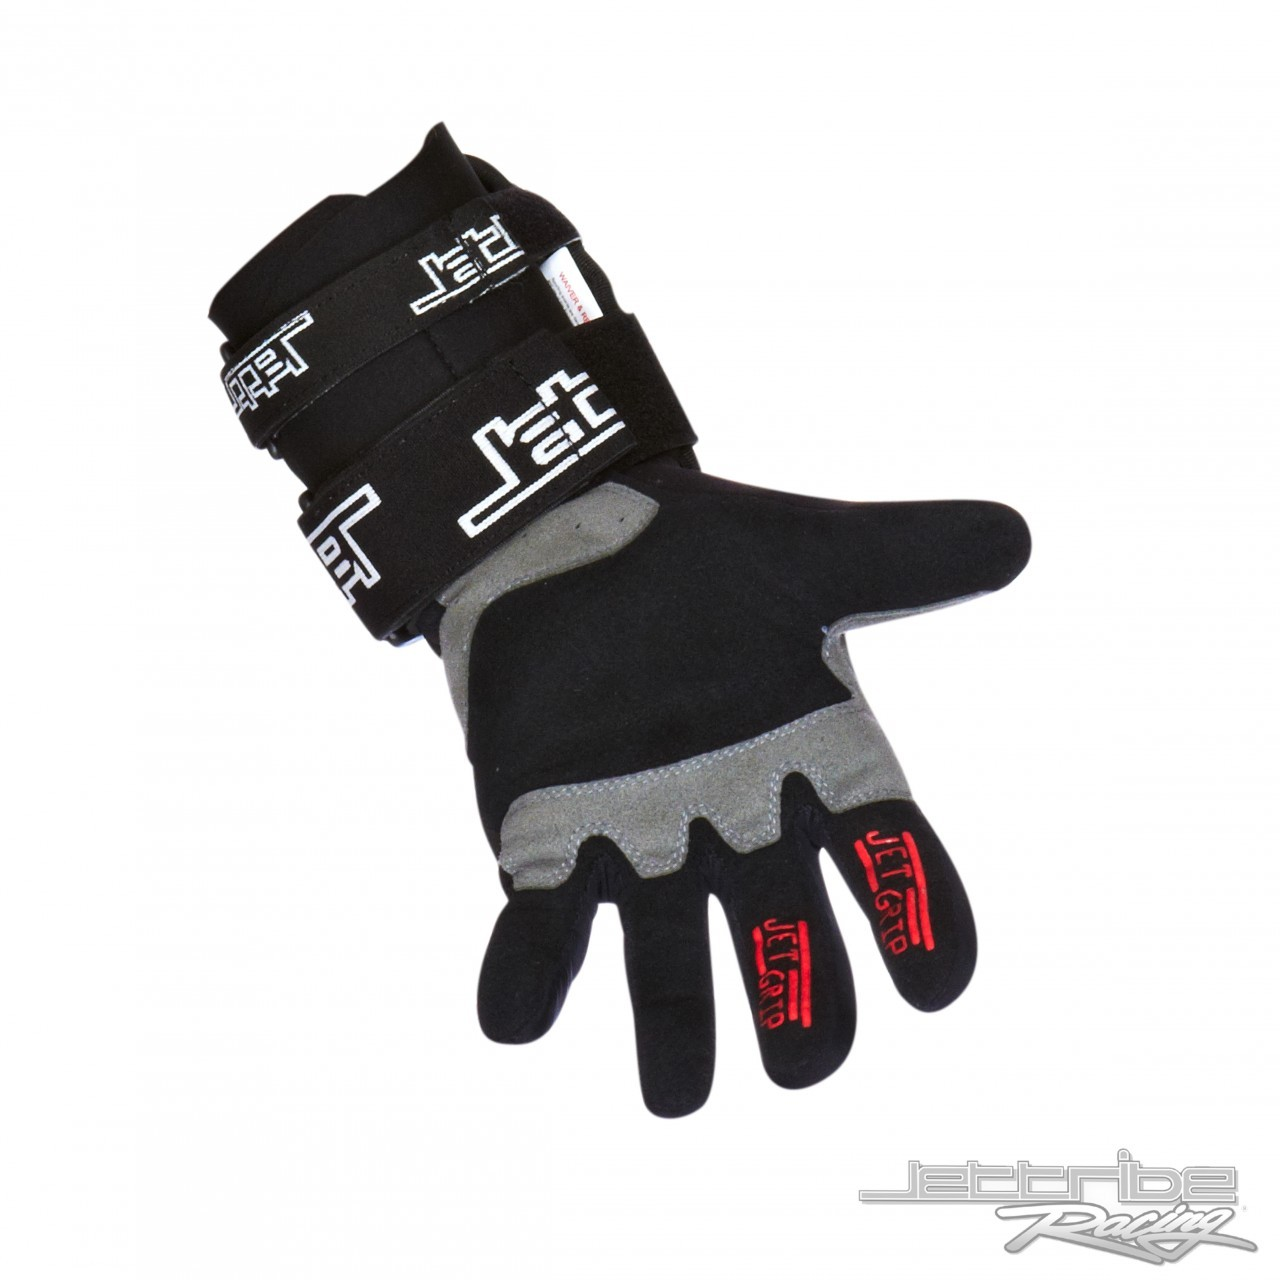 Jettribe G-Force Gloves - Size X-Large